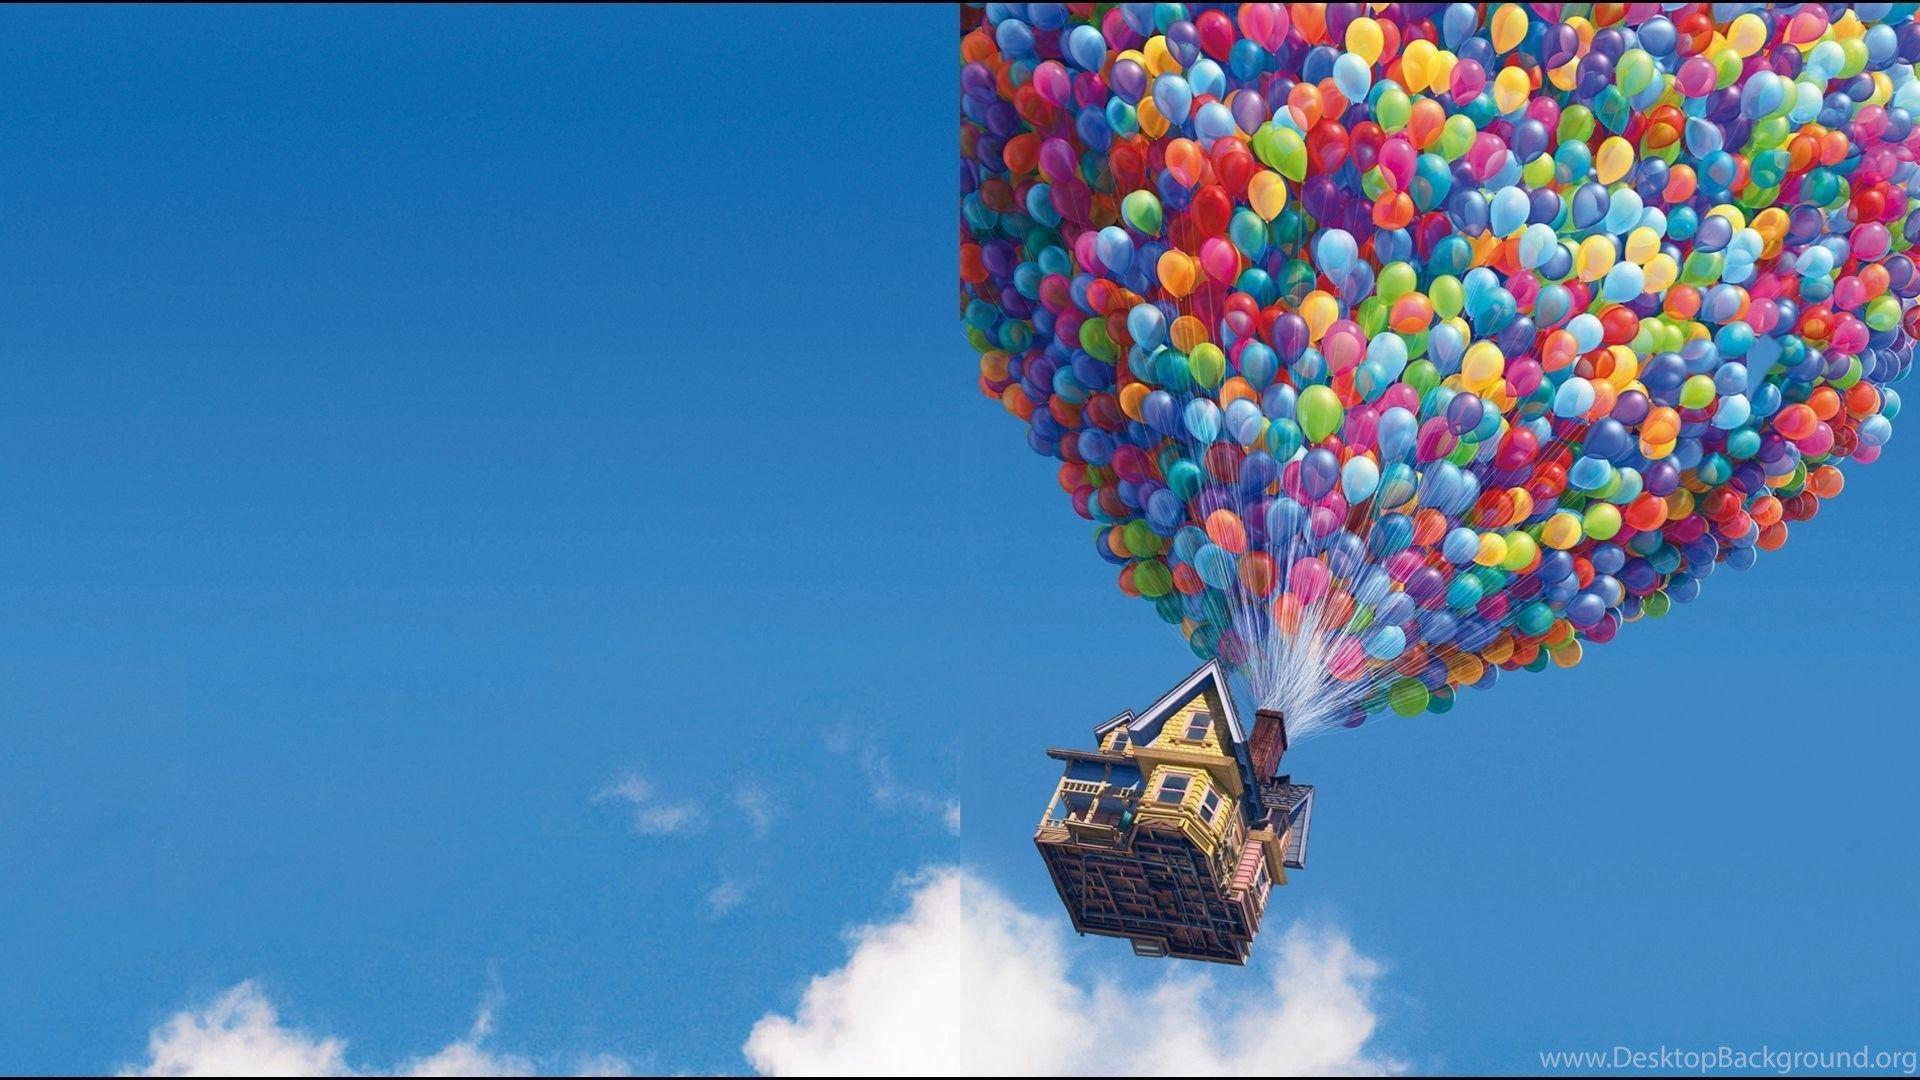 Pixar Up Movie Fresh New Hd Wallpapers [Your Popular HD Wallpapers ...